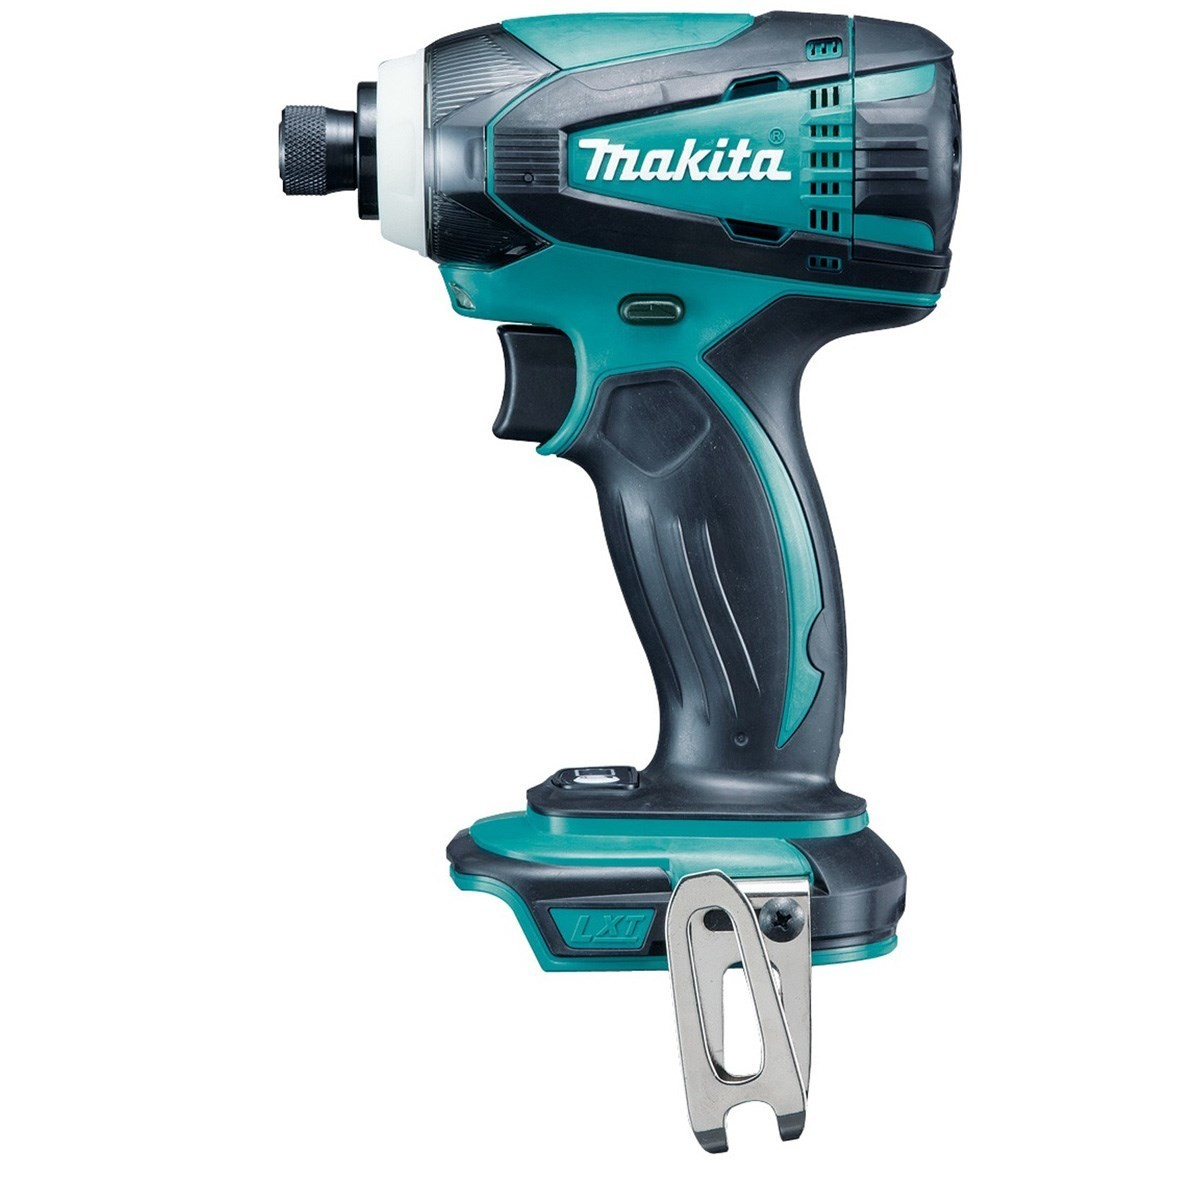 makita dtd146z lxt 18v li ion cordless impact driver body only powertool world. Black Bedroom Furniture Sets. Home Design Ideas